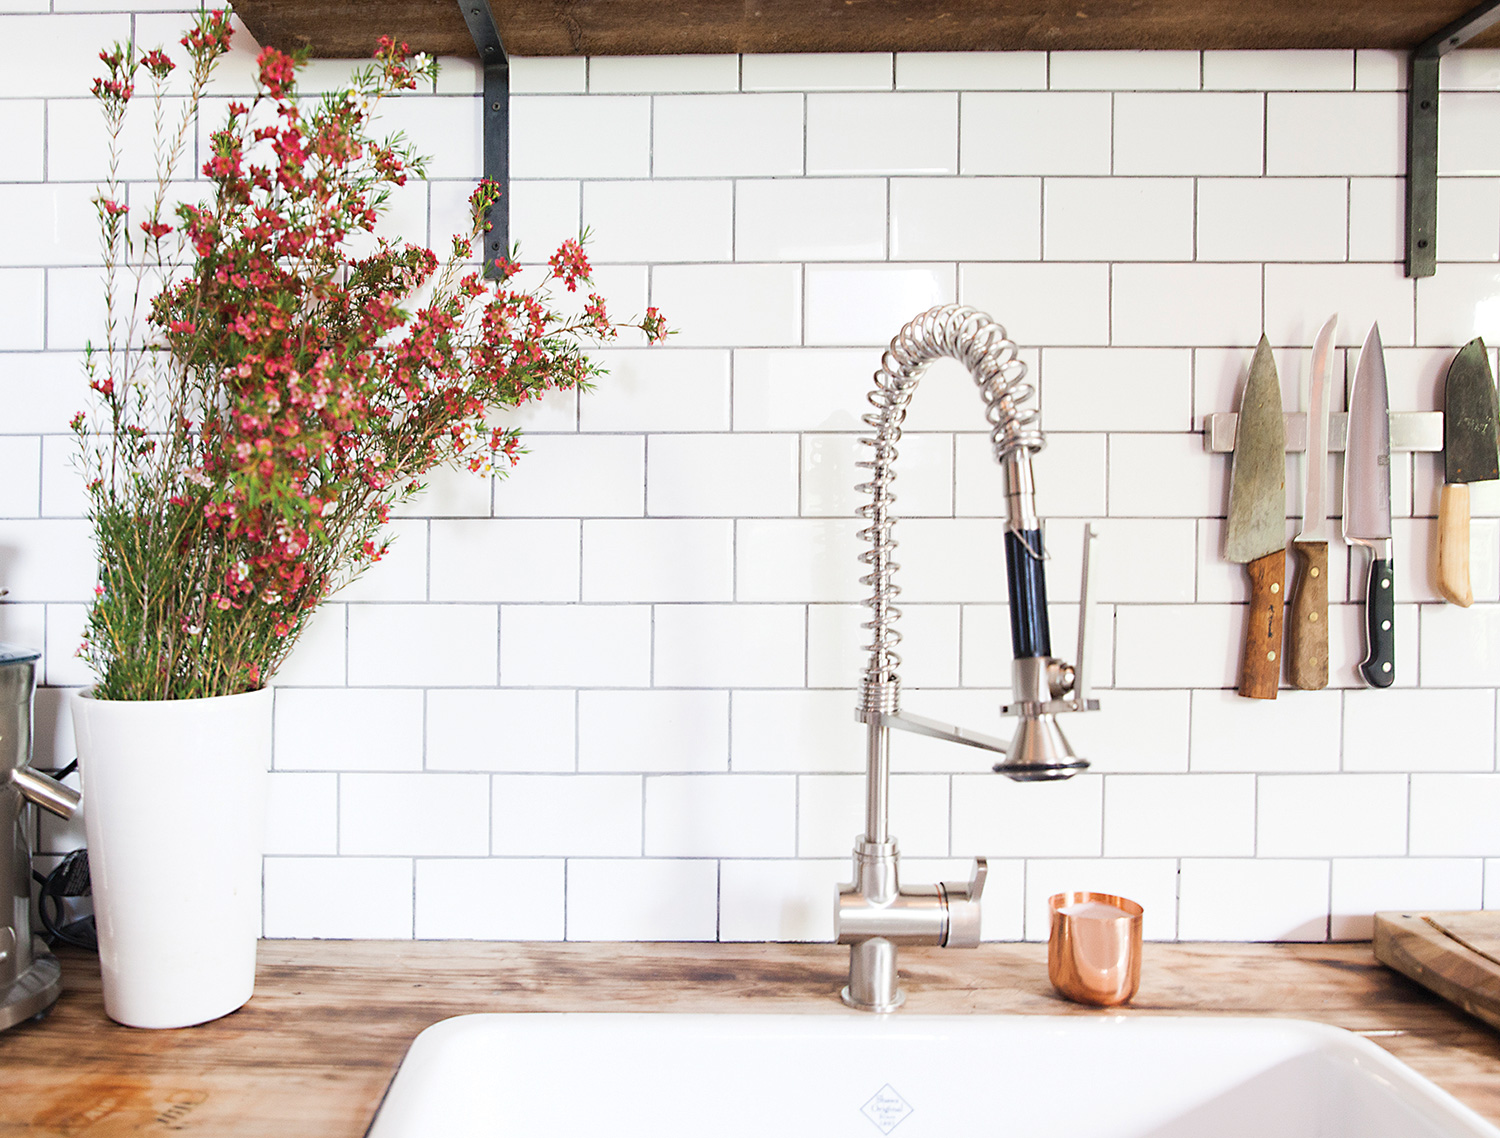 White subway tile (from Saltillo Imports) with grey grout covers two walls in the kitchen. Oak shelves are hoisted on industrial-strength brackets; sink from Roman Bath Centre.